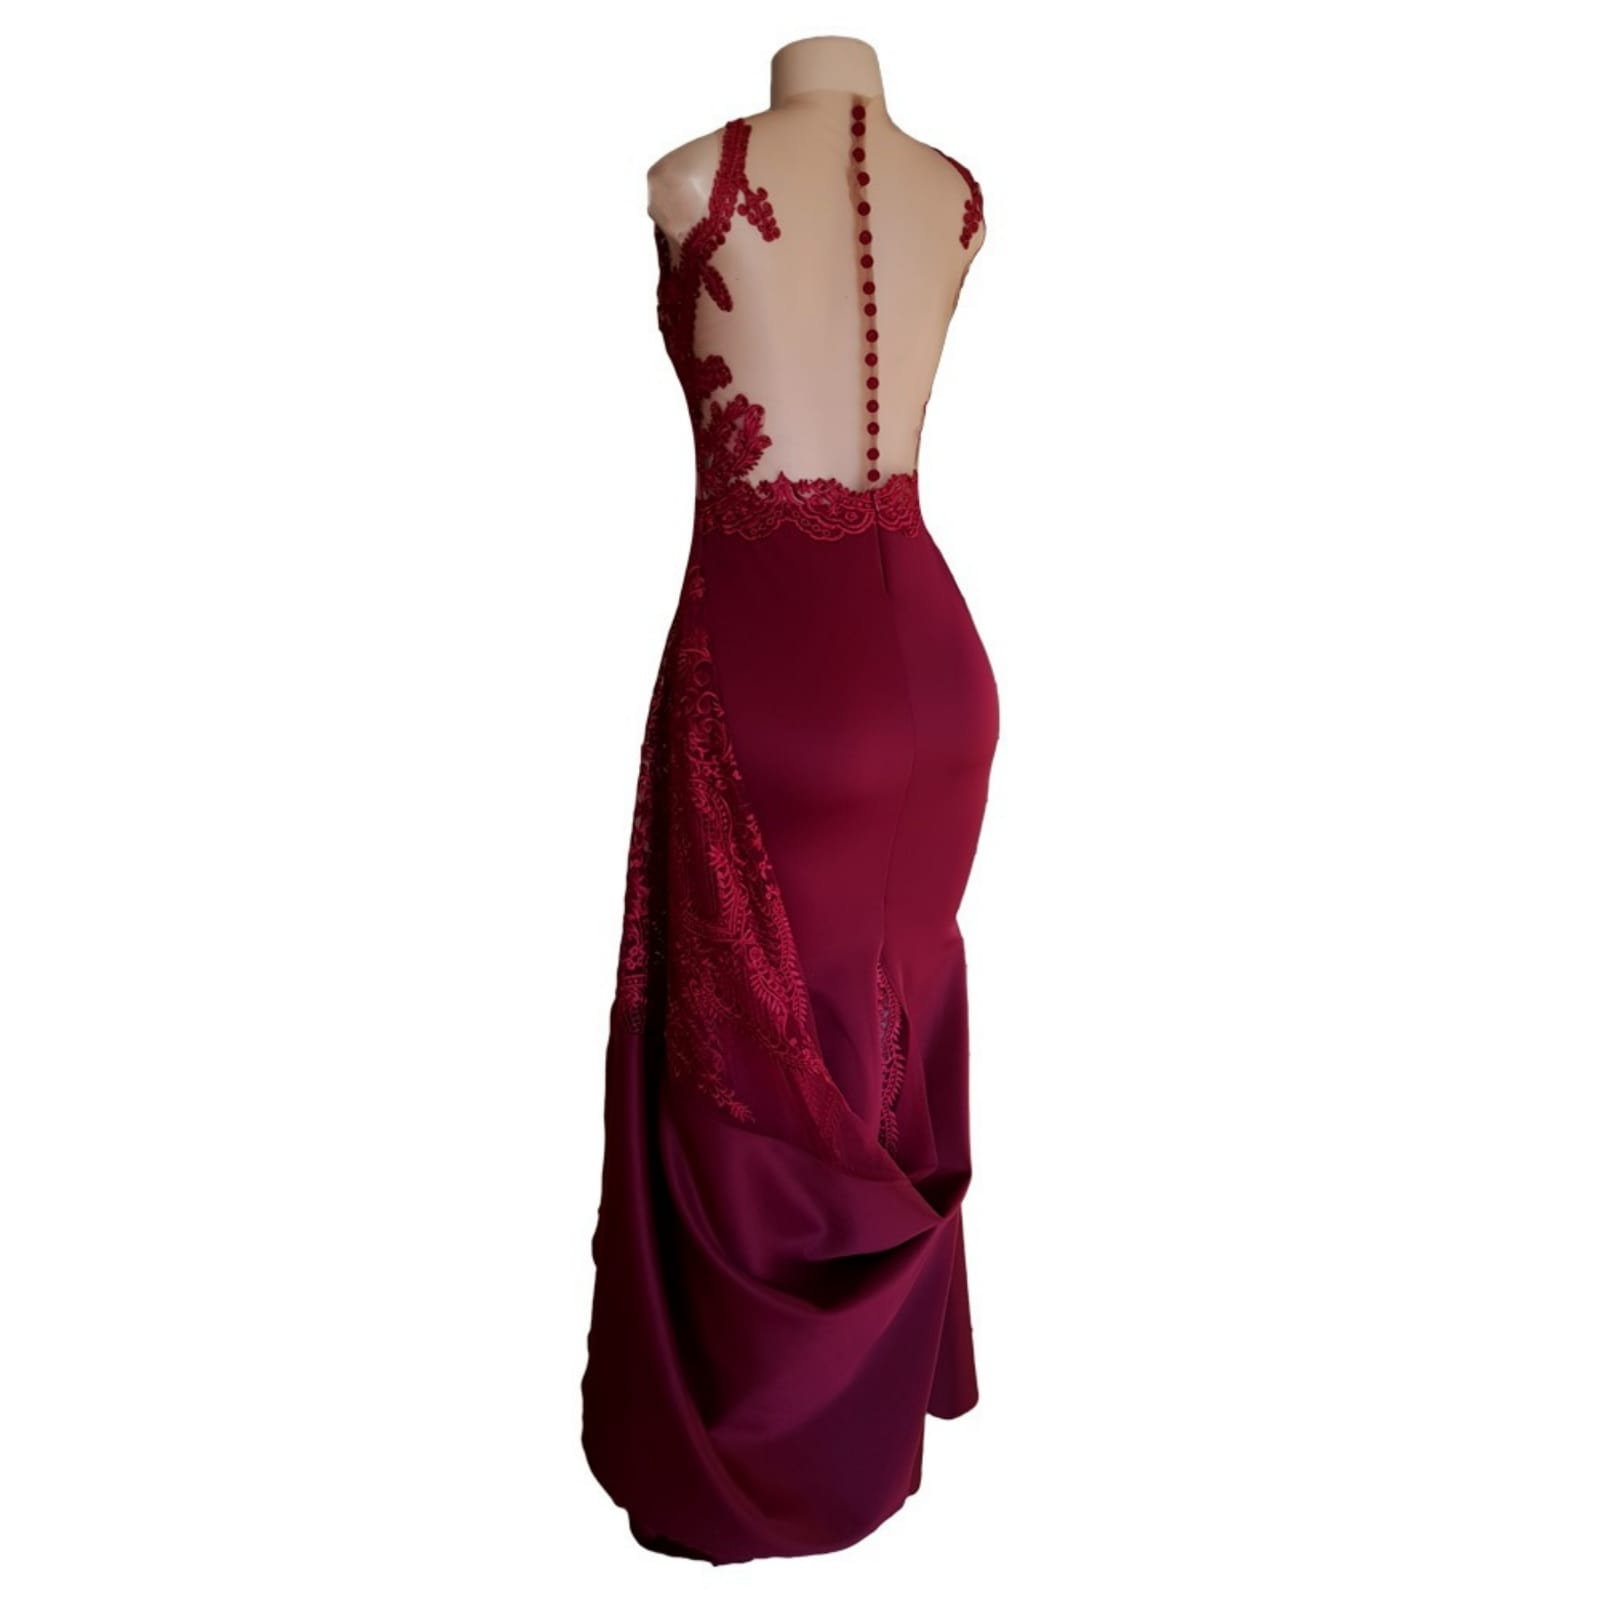 Maroon soft mermaid matric dance dress 6 maroon soft mermaid matric dance dress created to make celine look glorious in her special night. With a sheer lace train that hooks up on the side, a naked illusion back with button and lace detail adding a touch of sensuality and elegance to her look.